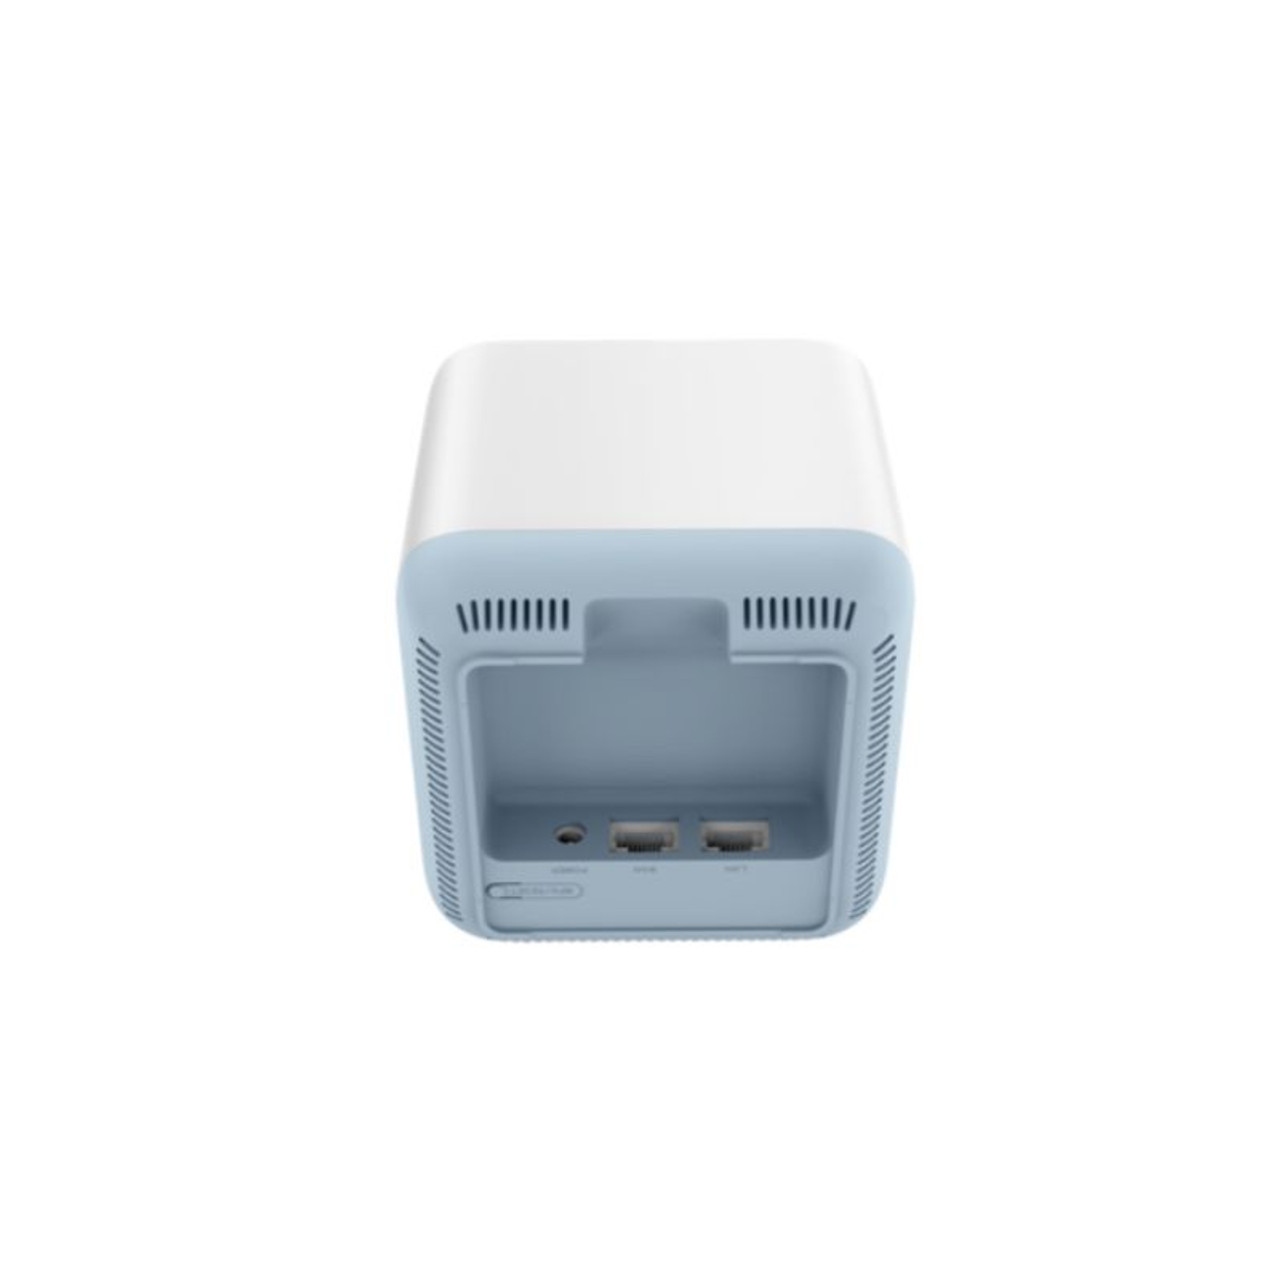 TCL Mesh WIFI Router AC1200 - 2 or 3 Pack